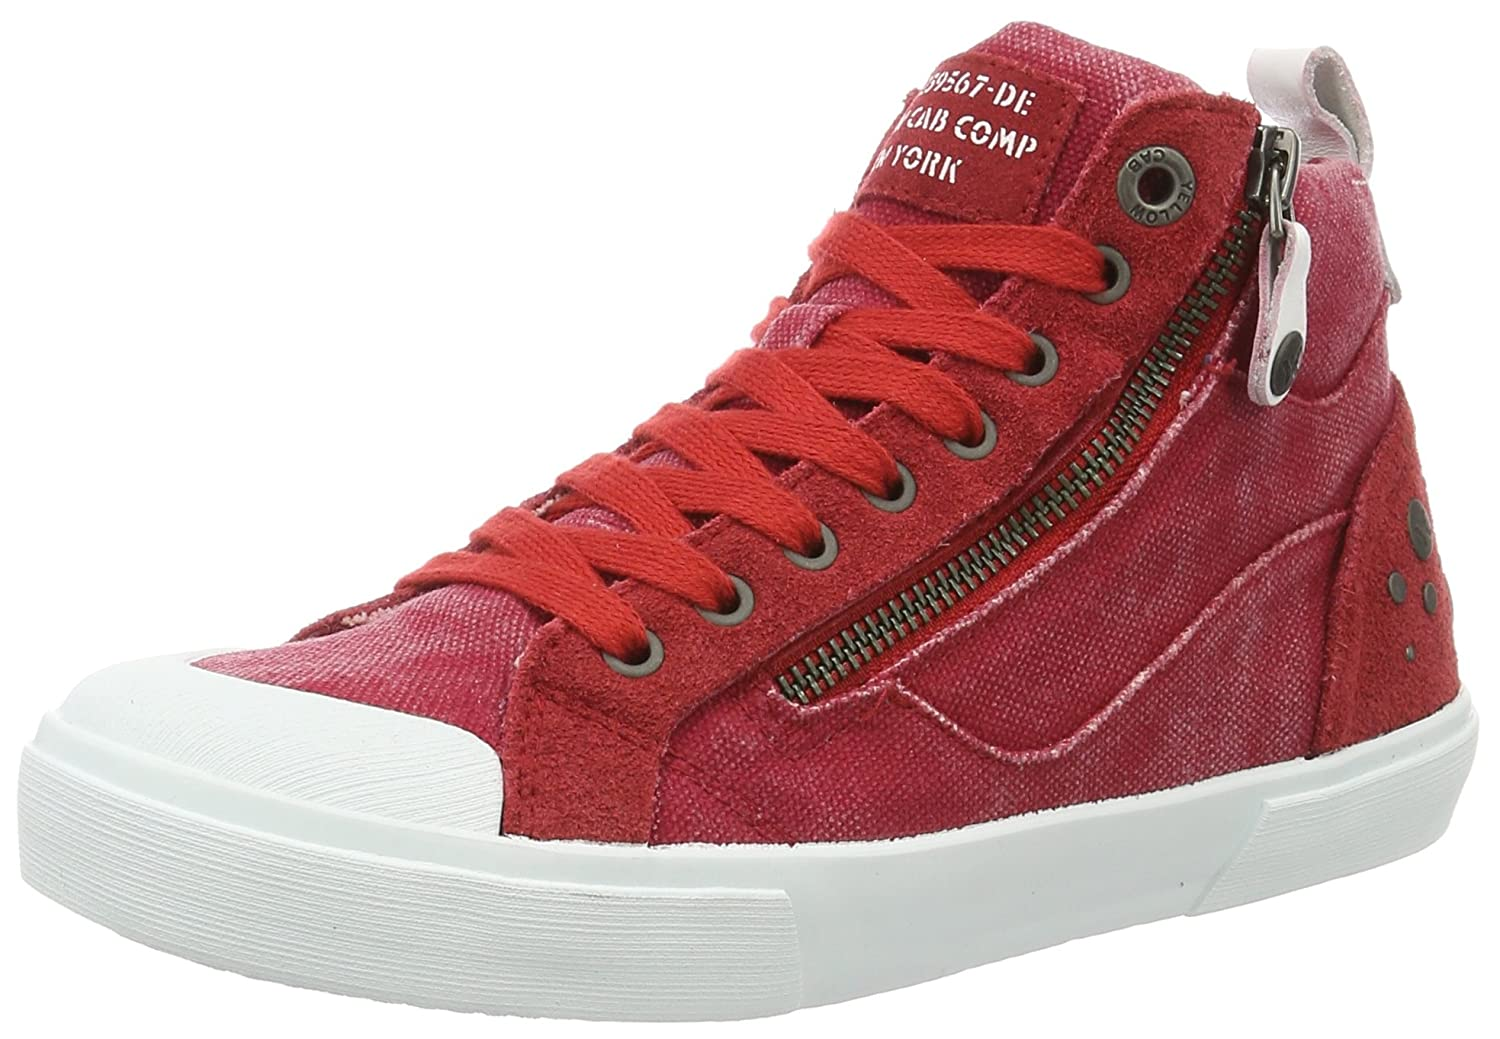 low priced da8c9 9d4bf Amazon.com | Yellow Cab Women Y25160 Hi-Top Trainers Red ...